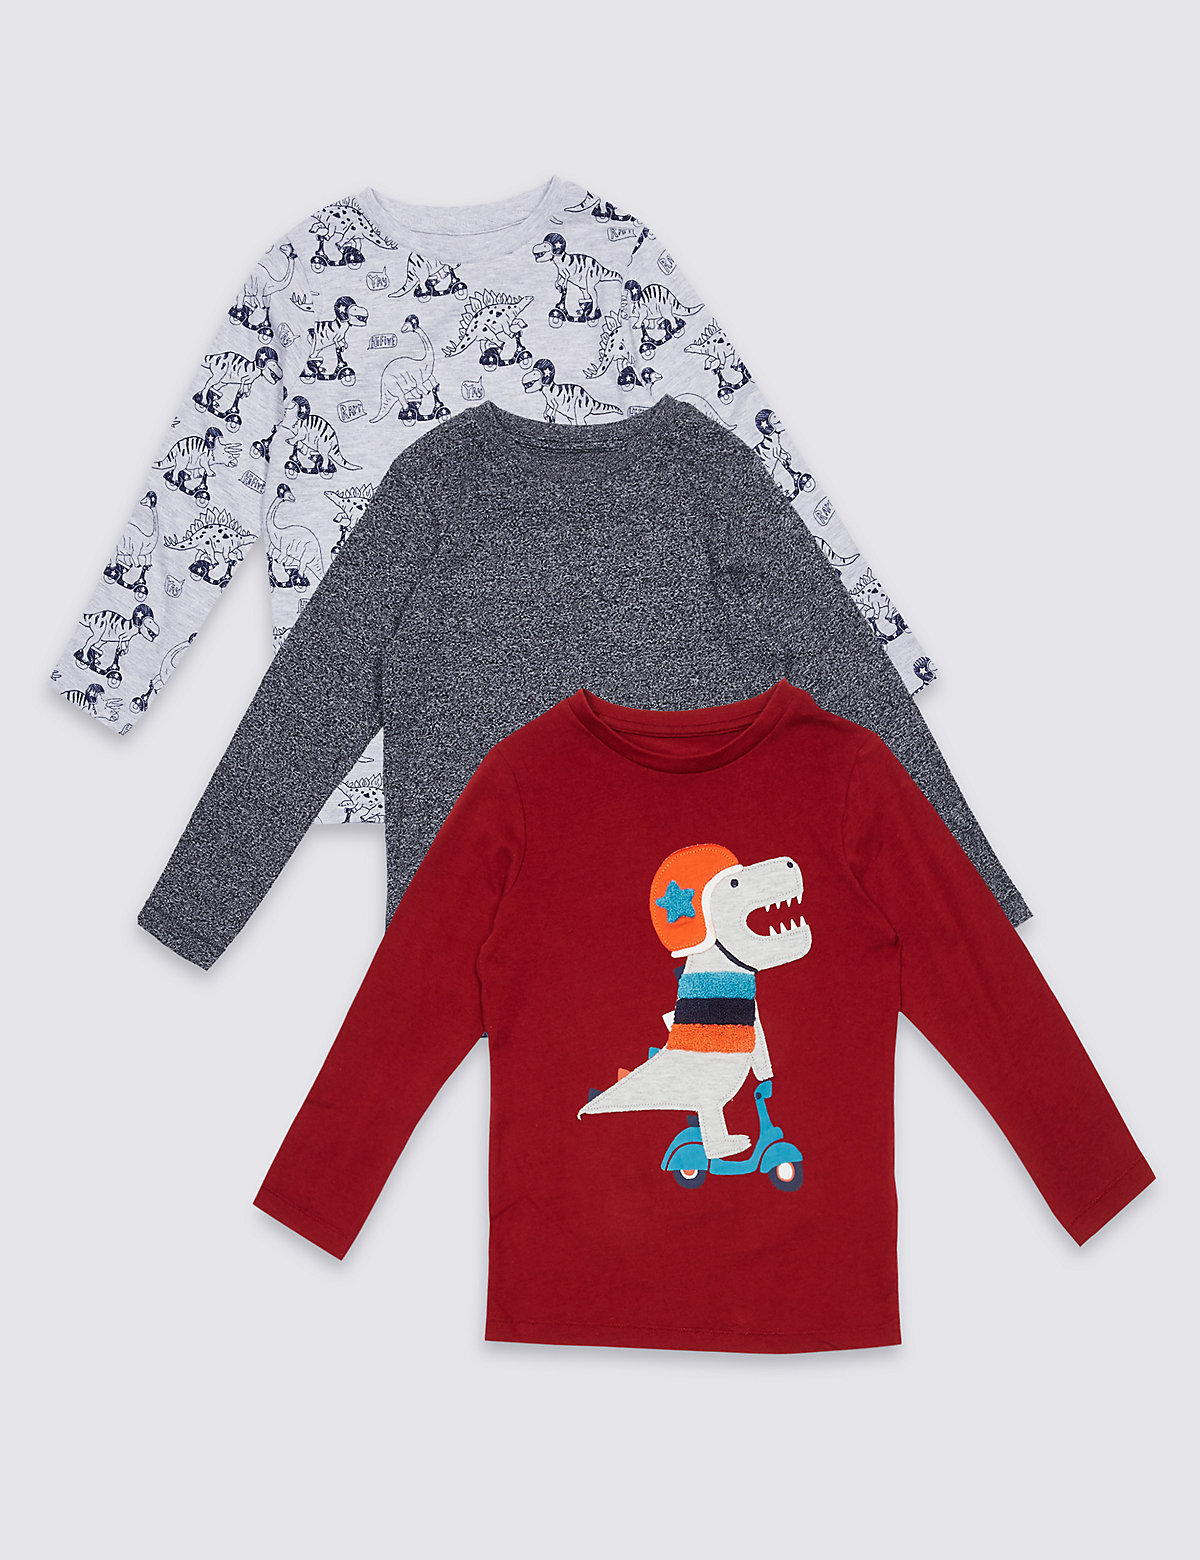 3 Pack Long Sleeve Tops (3 Months - 5 Years)